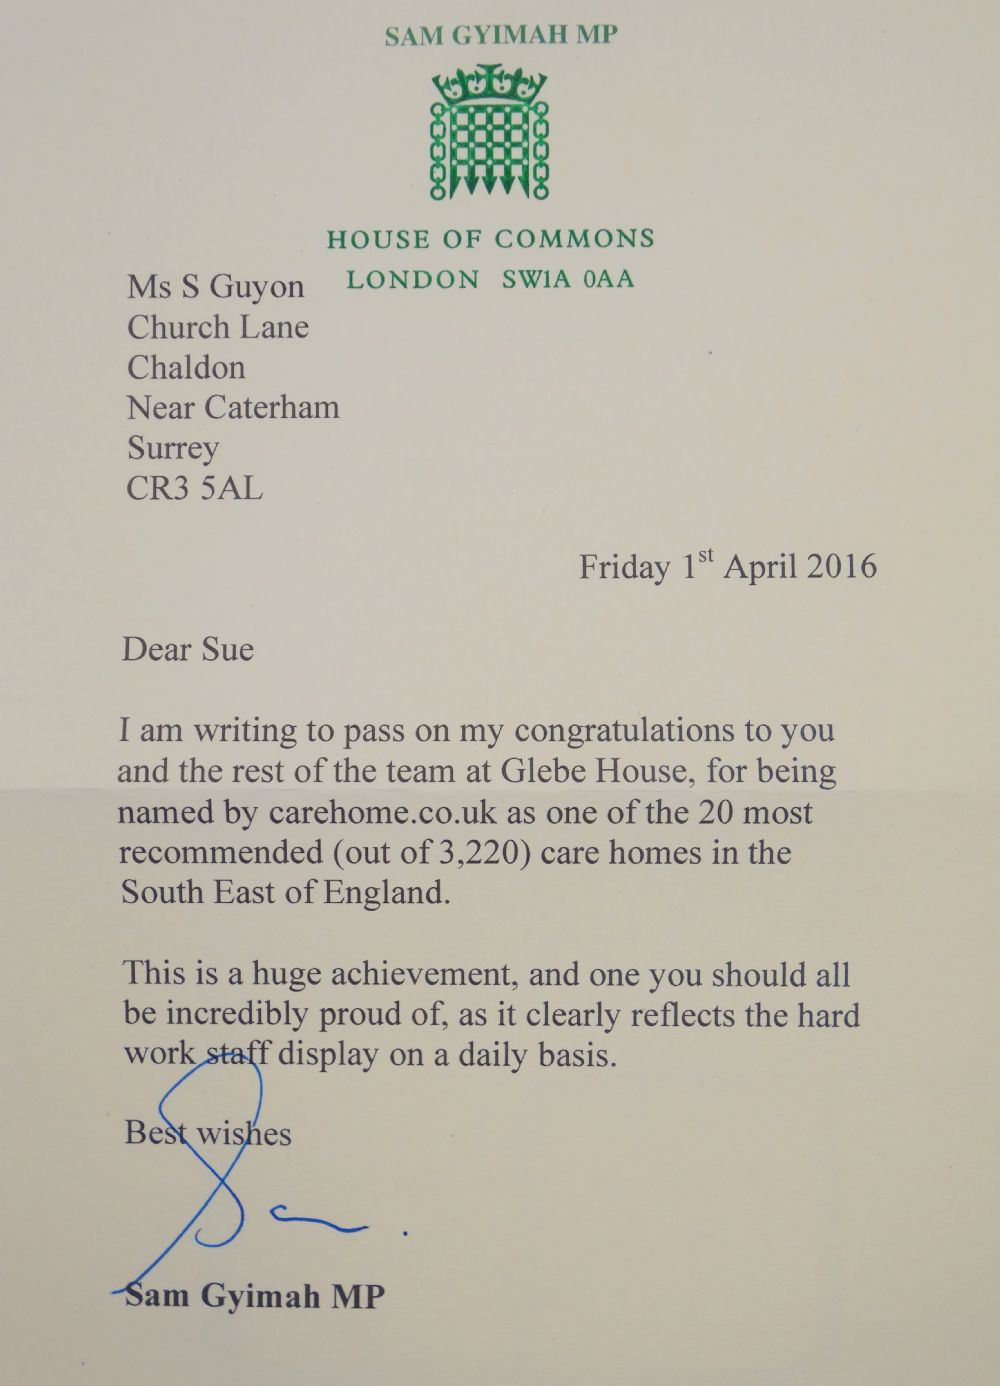 House of Commons Letter Actual